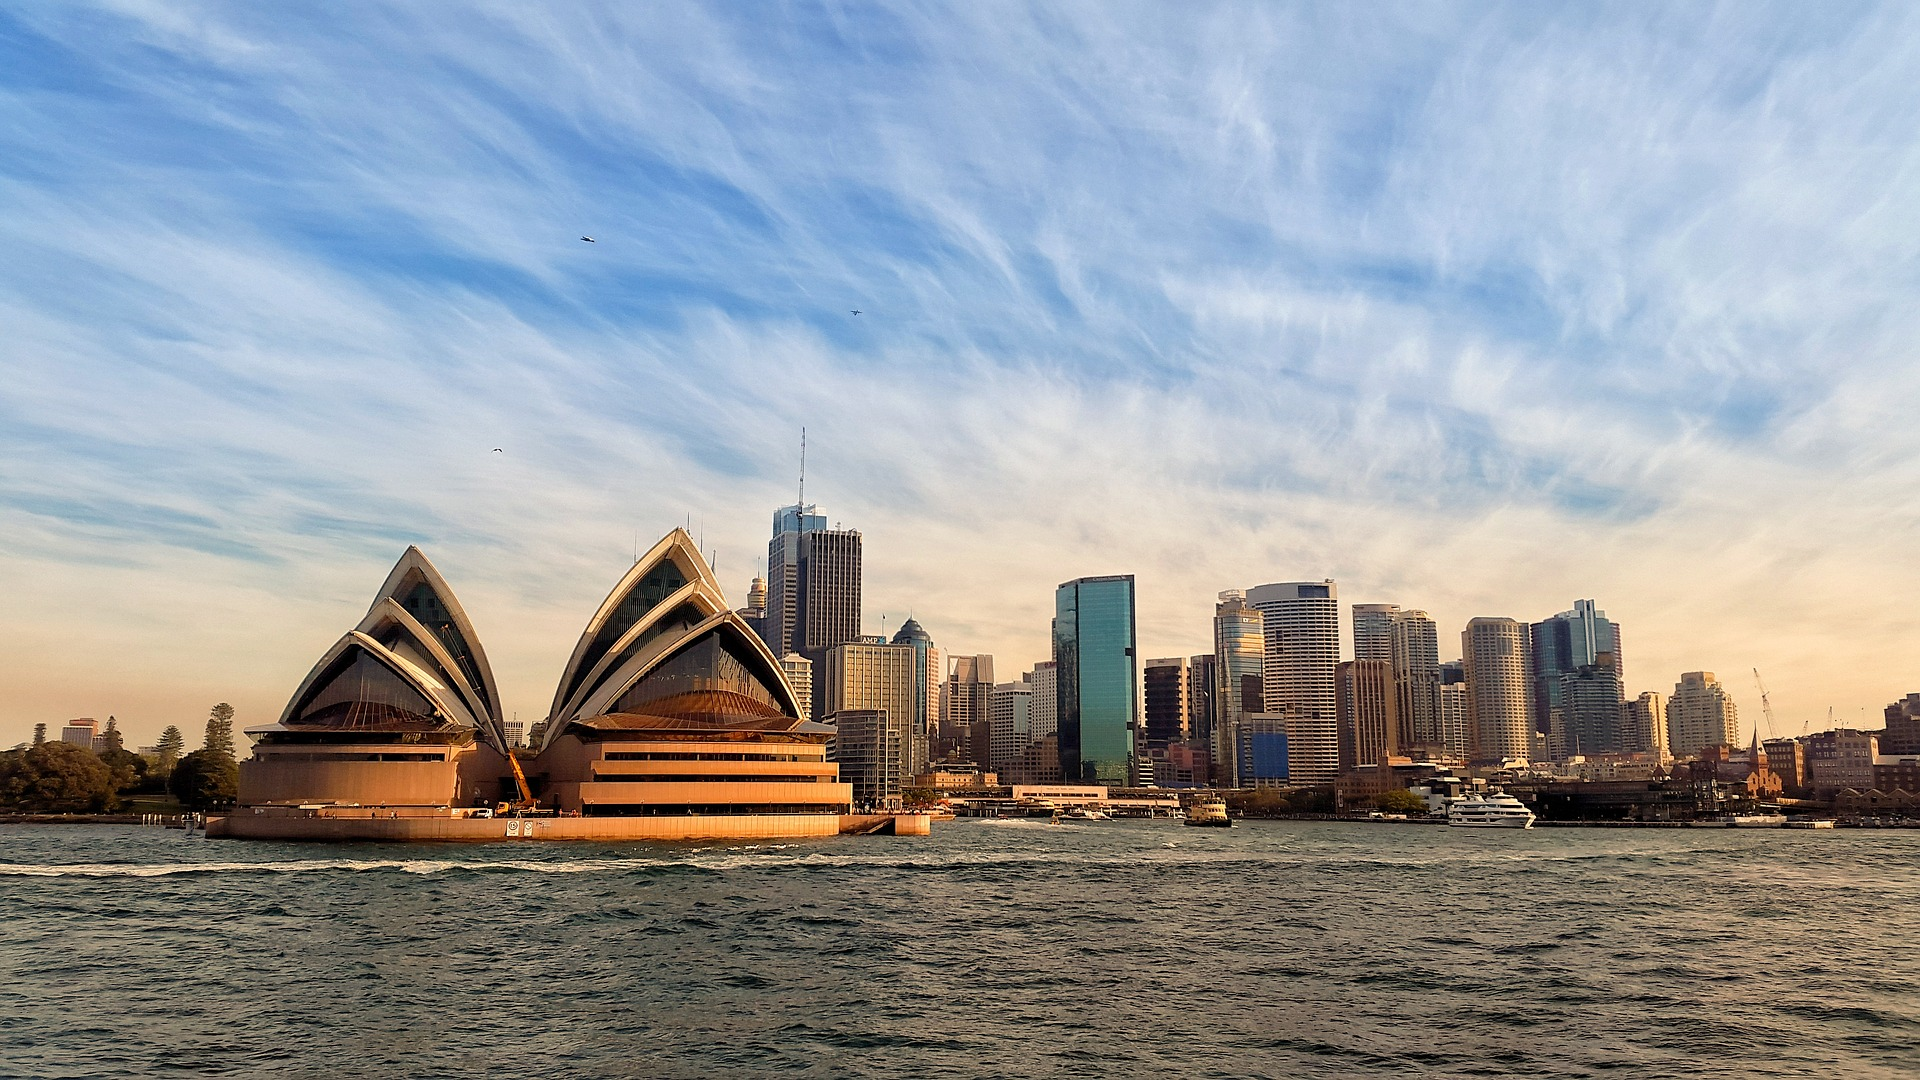 Sydney, Australia - Places to Visit During the Holidays